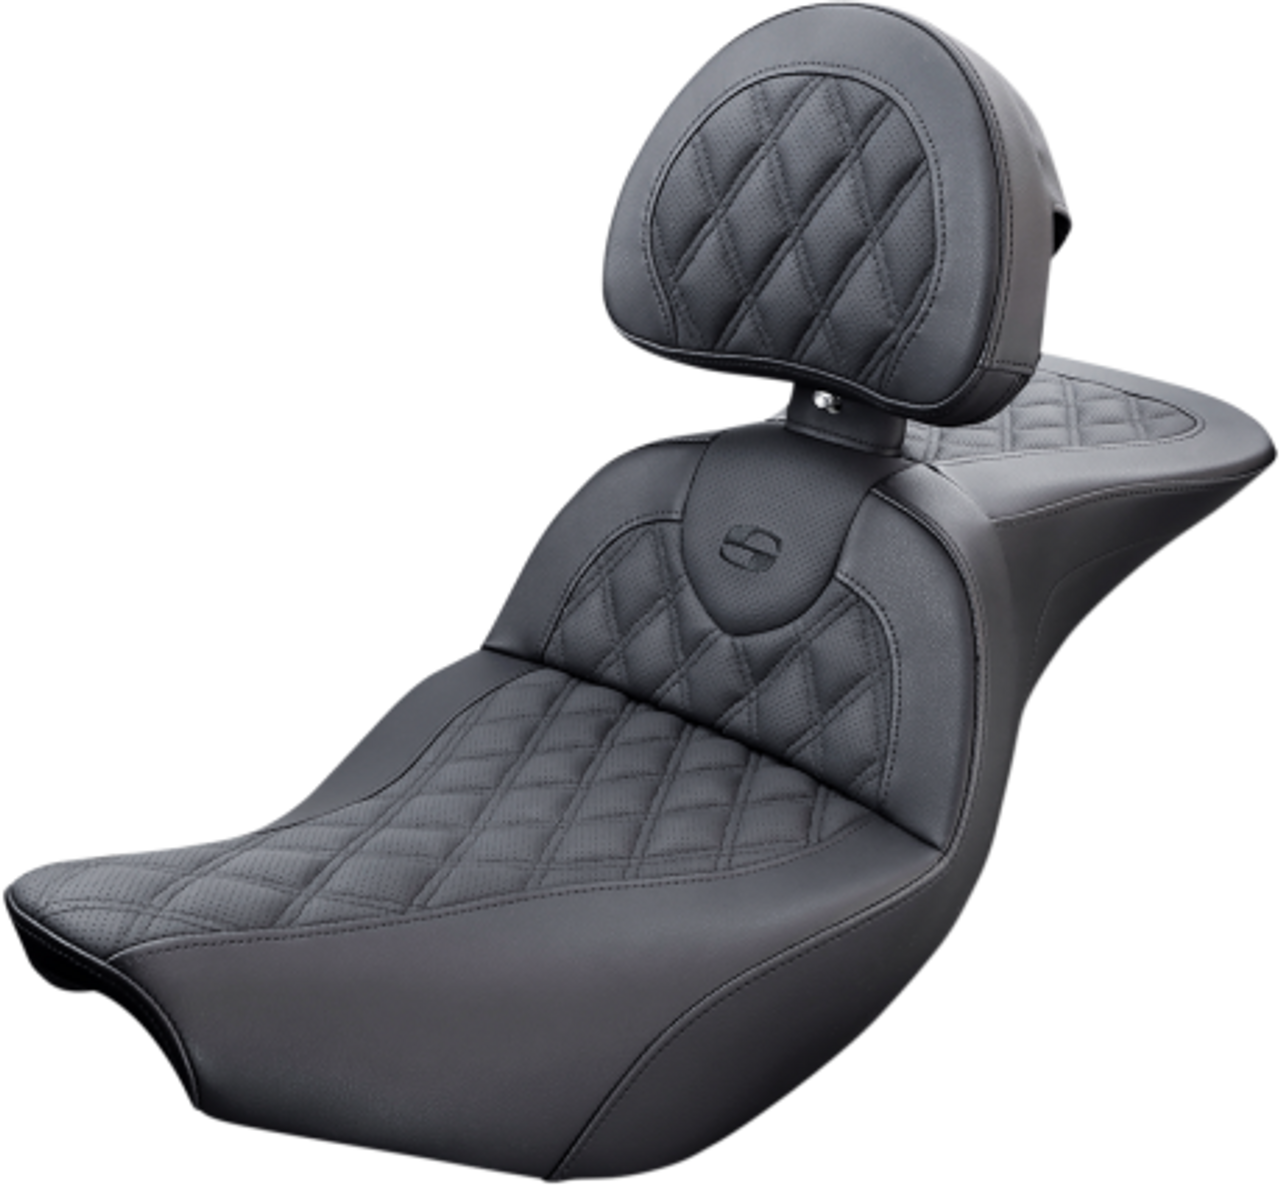 Pleasing Saddlemen Road Sofa Ls Seats For 14 Up Indian Touring Models Home Interior And Landscaping Ologienasavecom